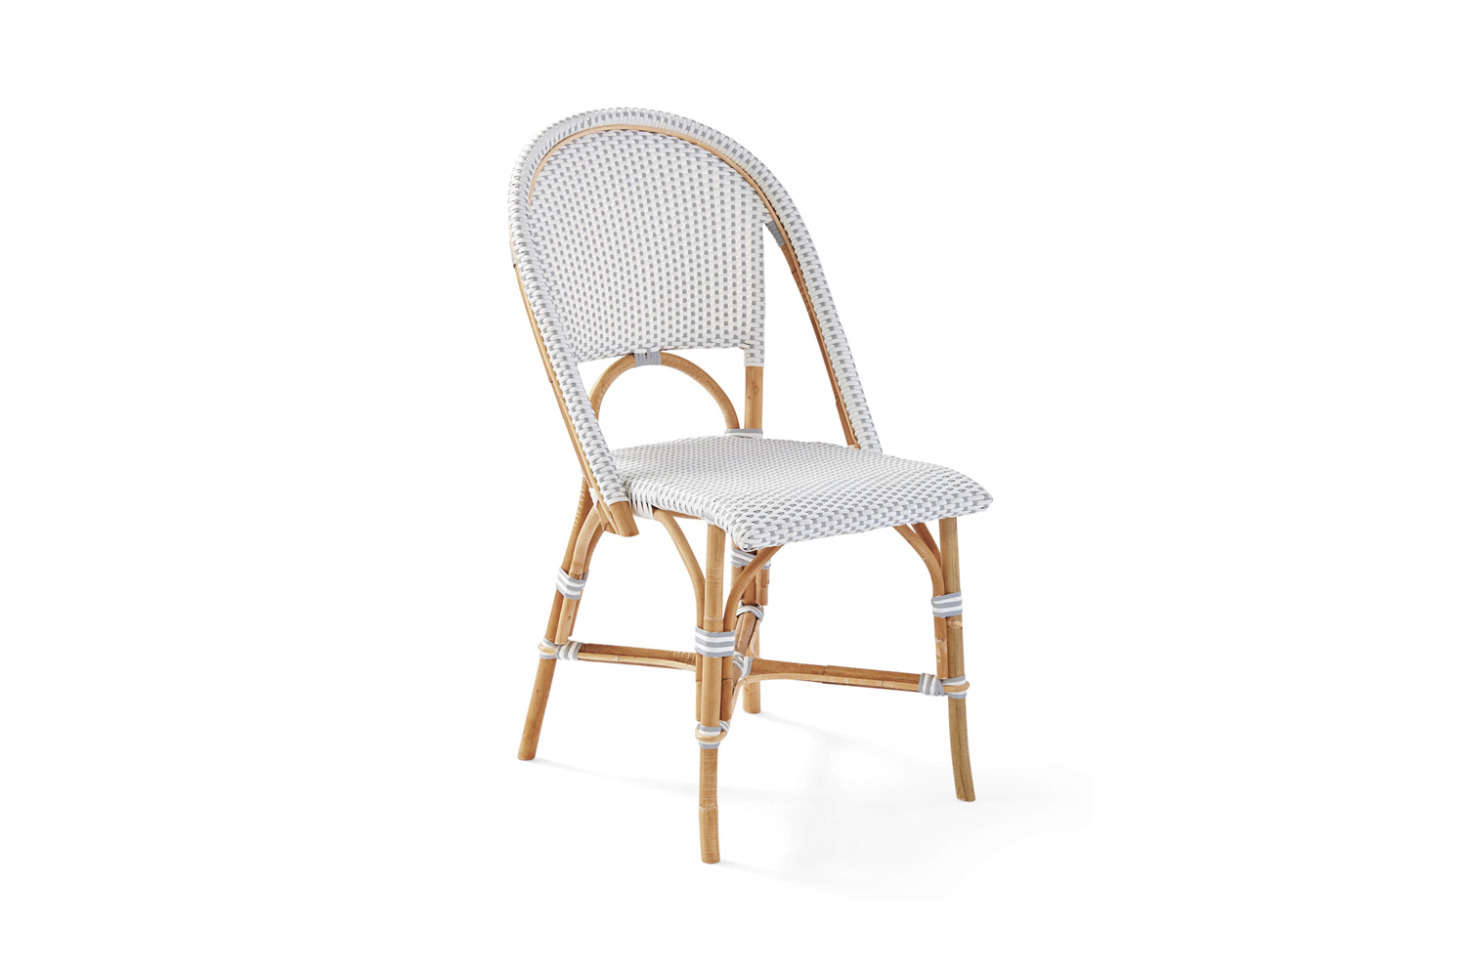 Serena & Lily offer a range of French-inspired bistro furniture, including the Riviera Side Chair, made of rattan with woven plastic seats; $248 in several color combinations. The company also offers versions made of weather-proof, powder-coated aluminum and in children's sizes, too.